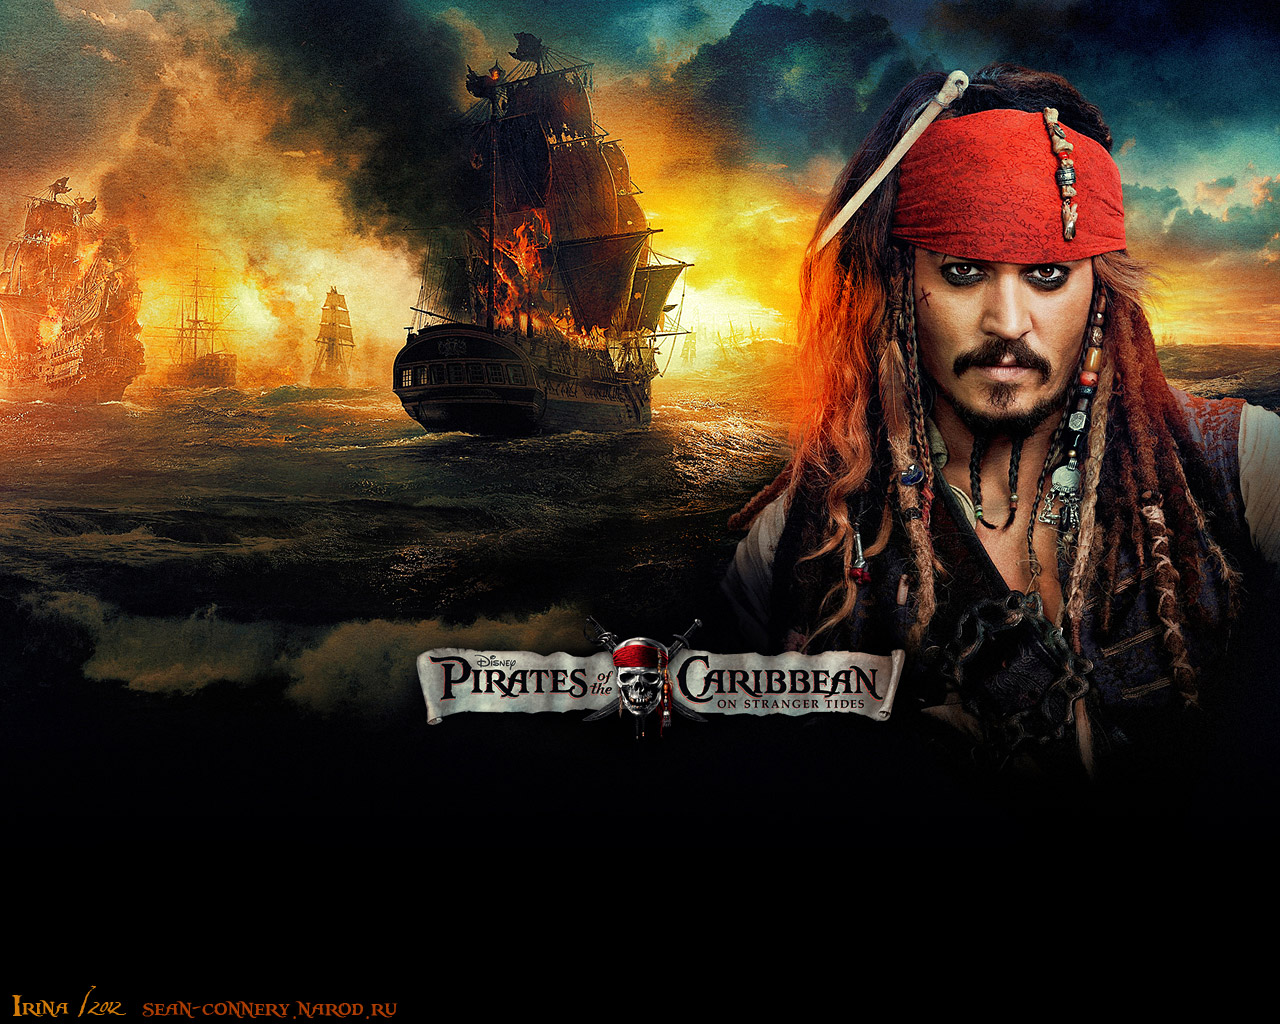 Пираты Карибского моря. На странных берегах (Pirates of the Caribbean. On Stranger Tides). Джонни Депп (Johnny Depp)  Wallpaper